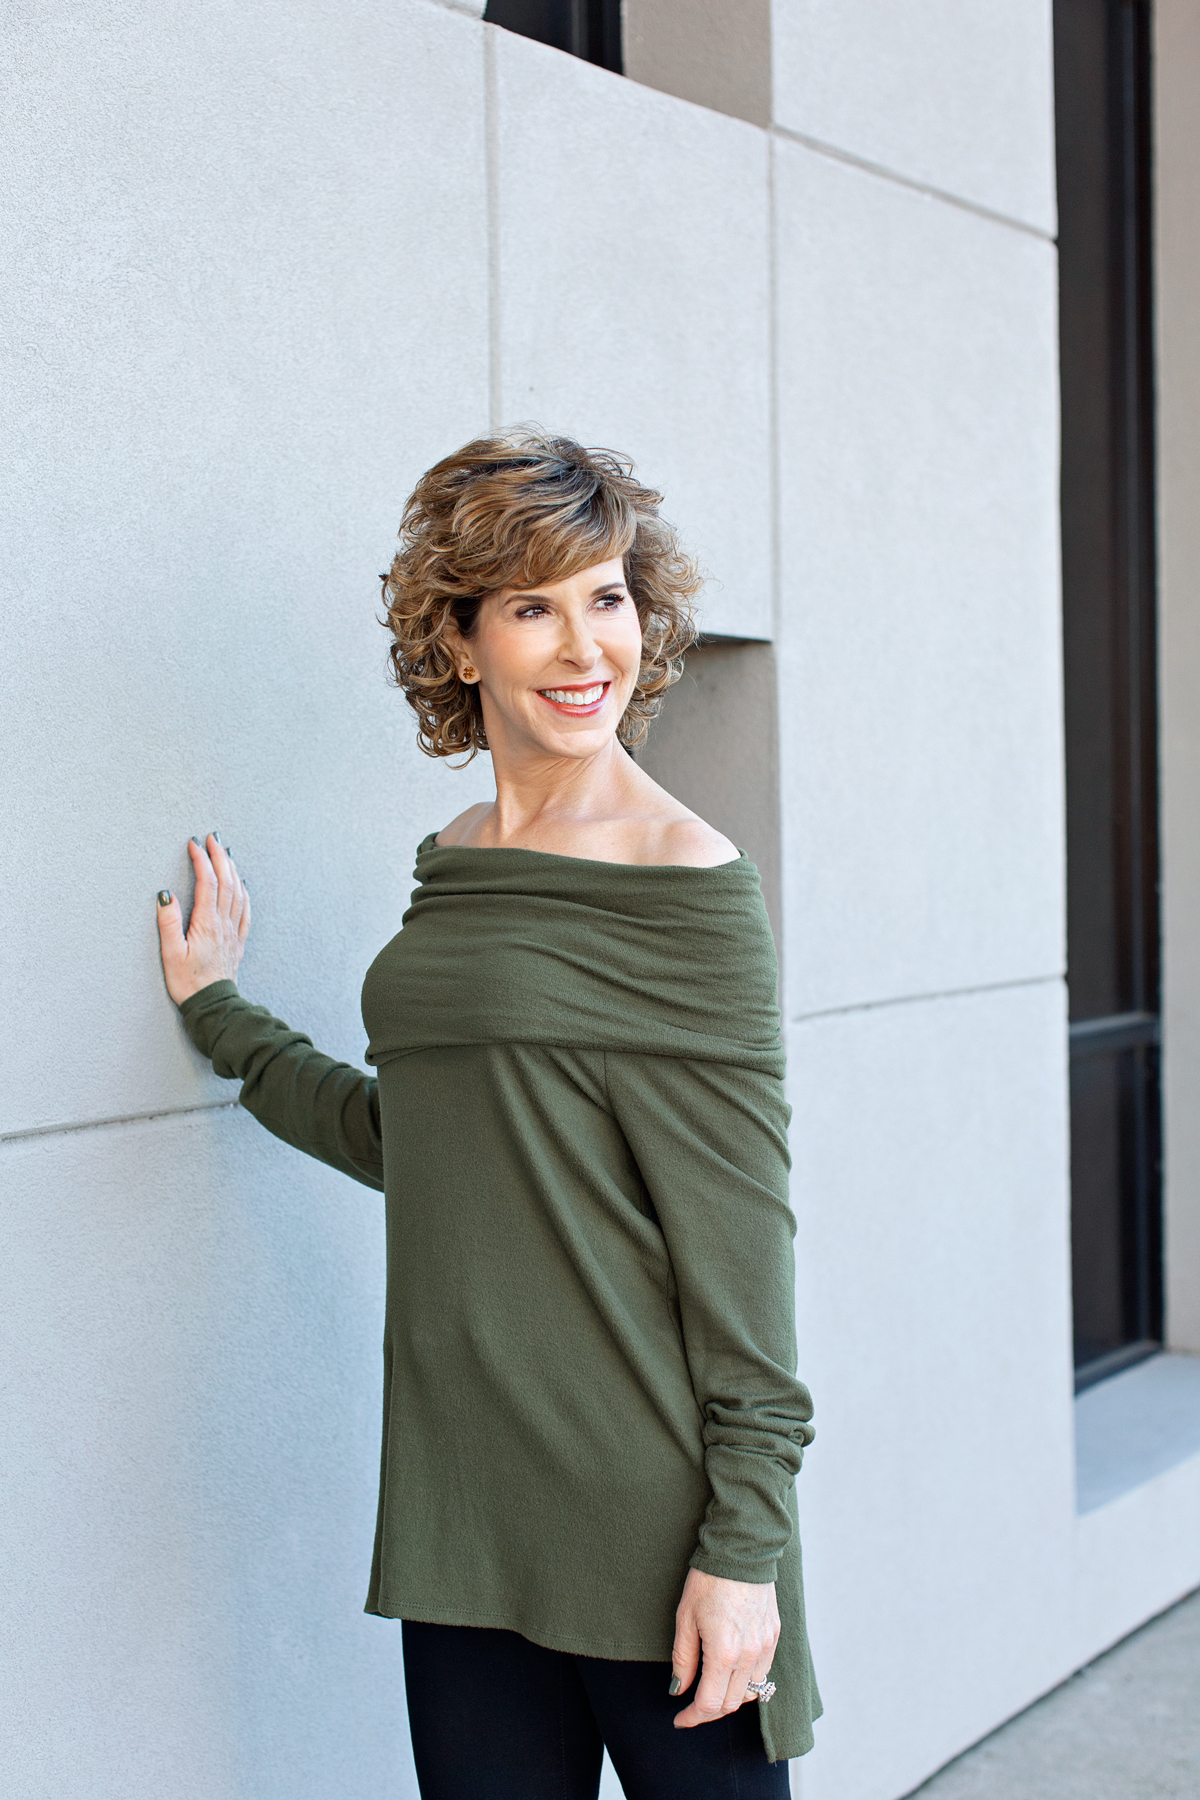 stylish woman over 50 with off the shoulder top standing by building